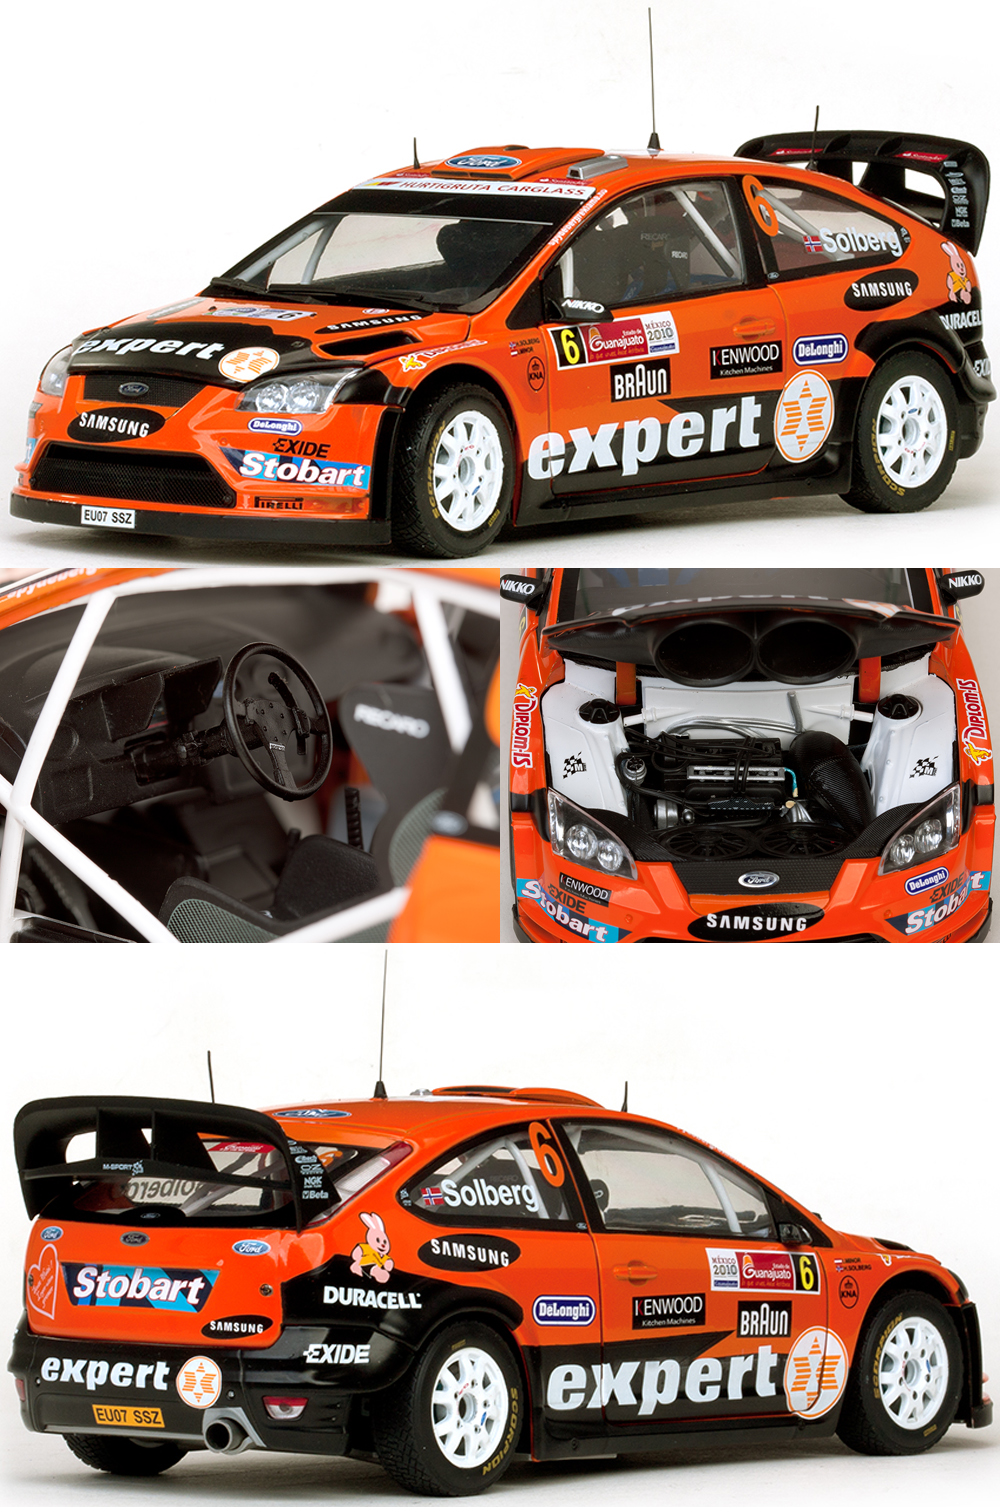 Sunstar bring you a 1/18th diecast model of the Ford Focus RS WRC08 World Rally Car driven by H Solberg & Co driven by I Minor in the Rally Mexico during 2010